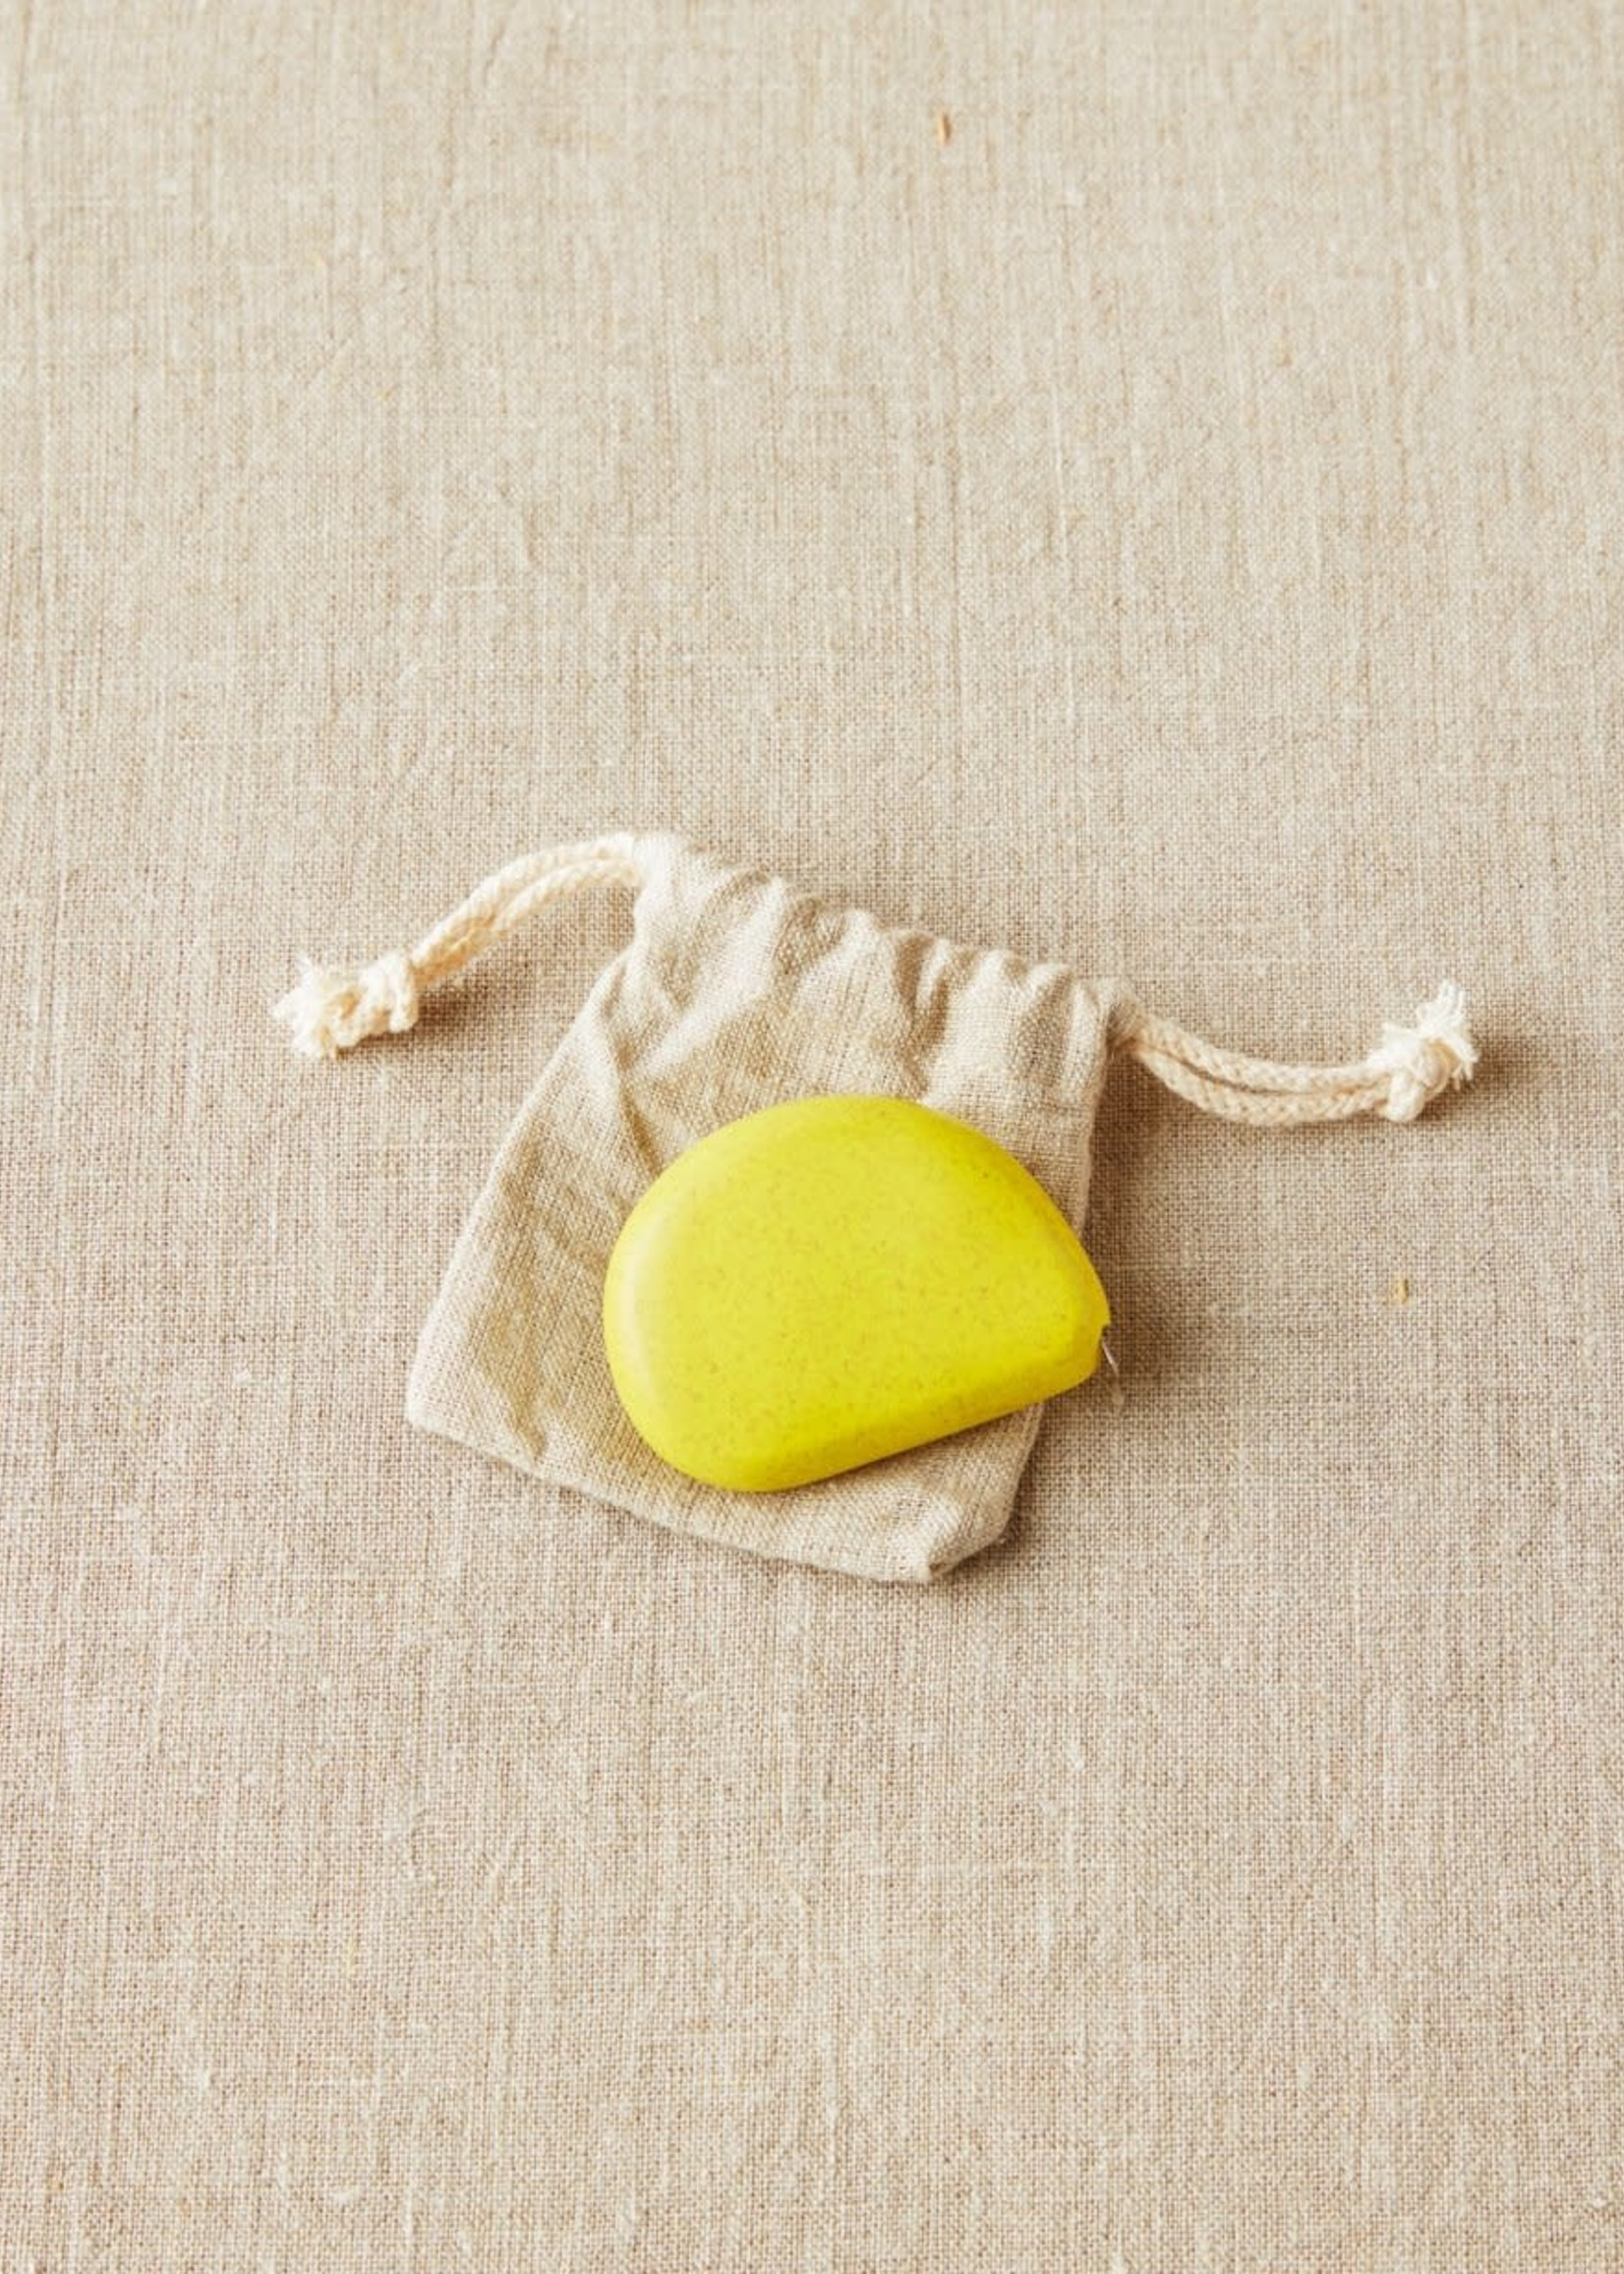 Cocoknits Cocoknits Tape Measure - Mustard Seed